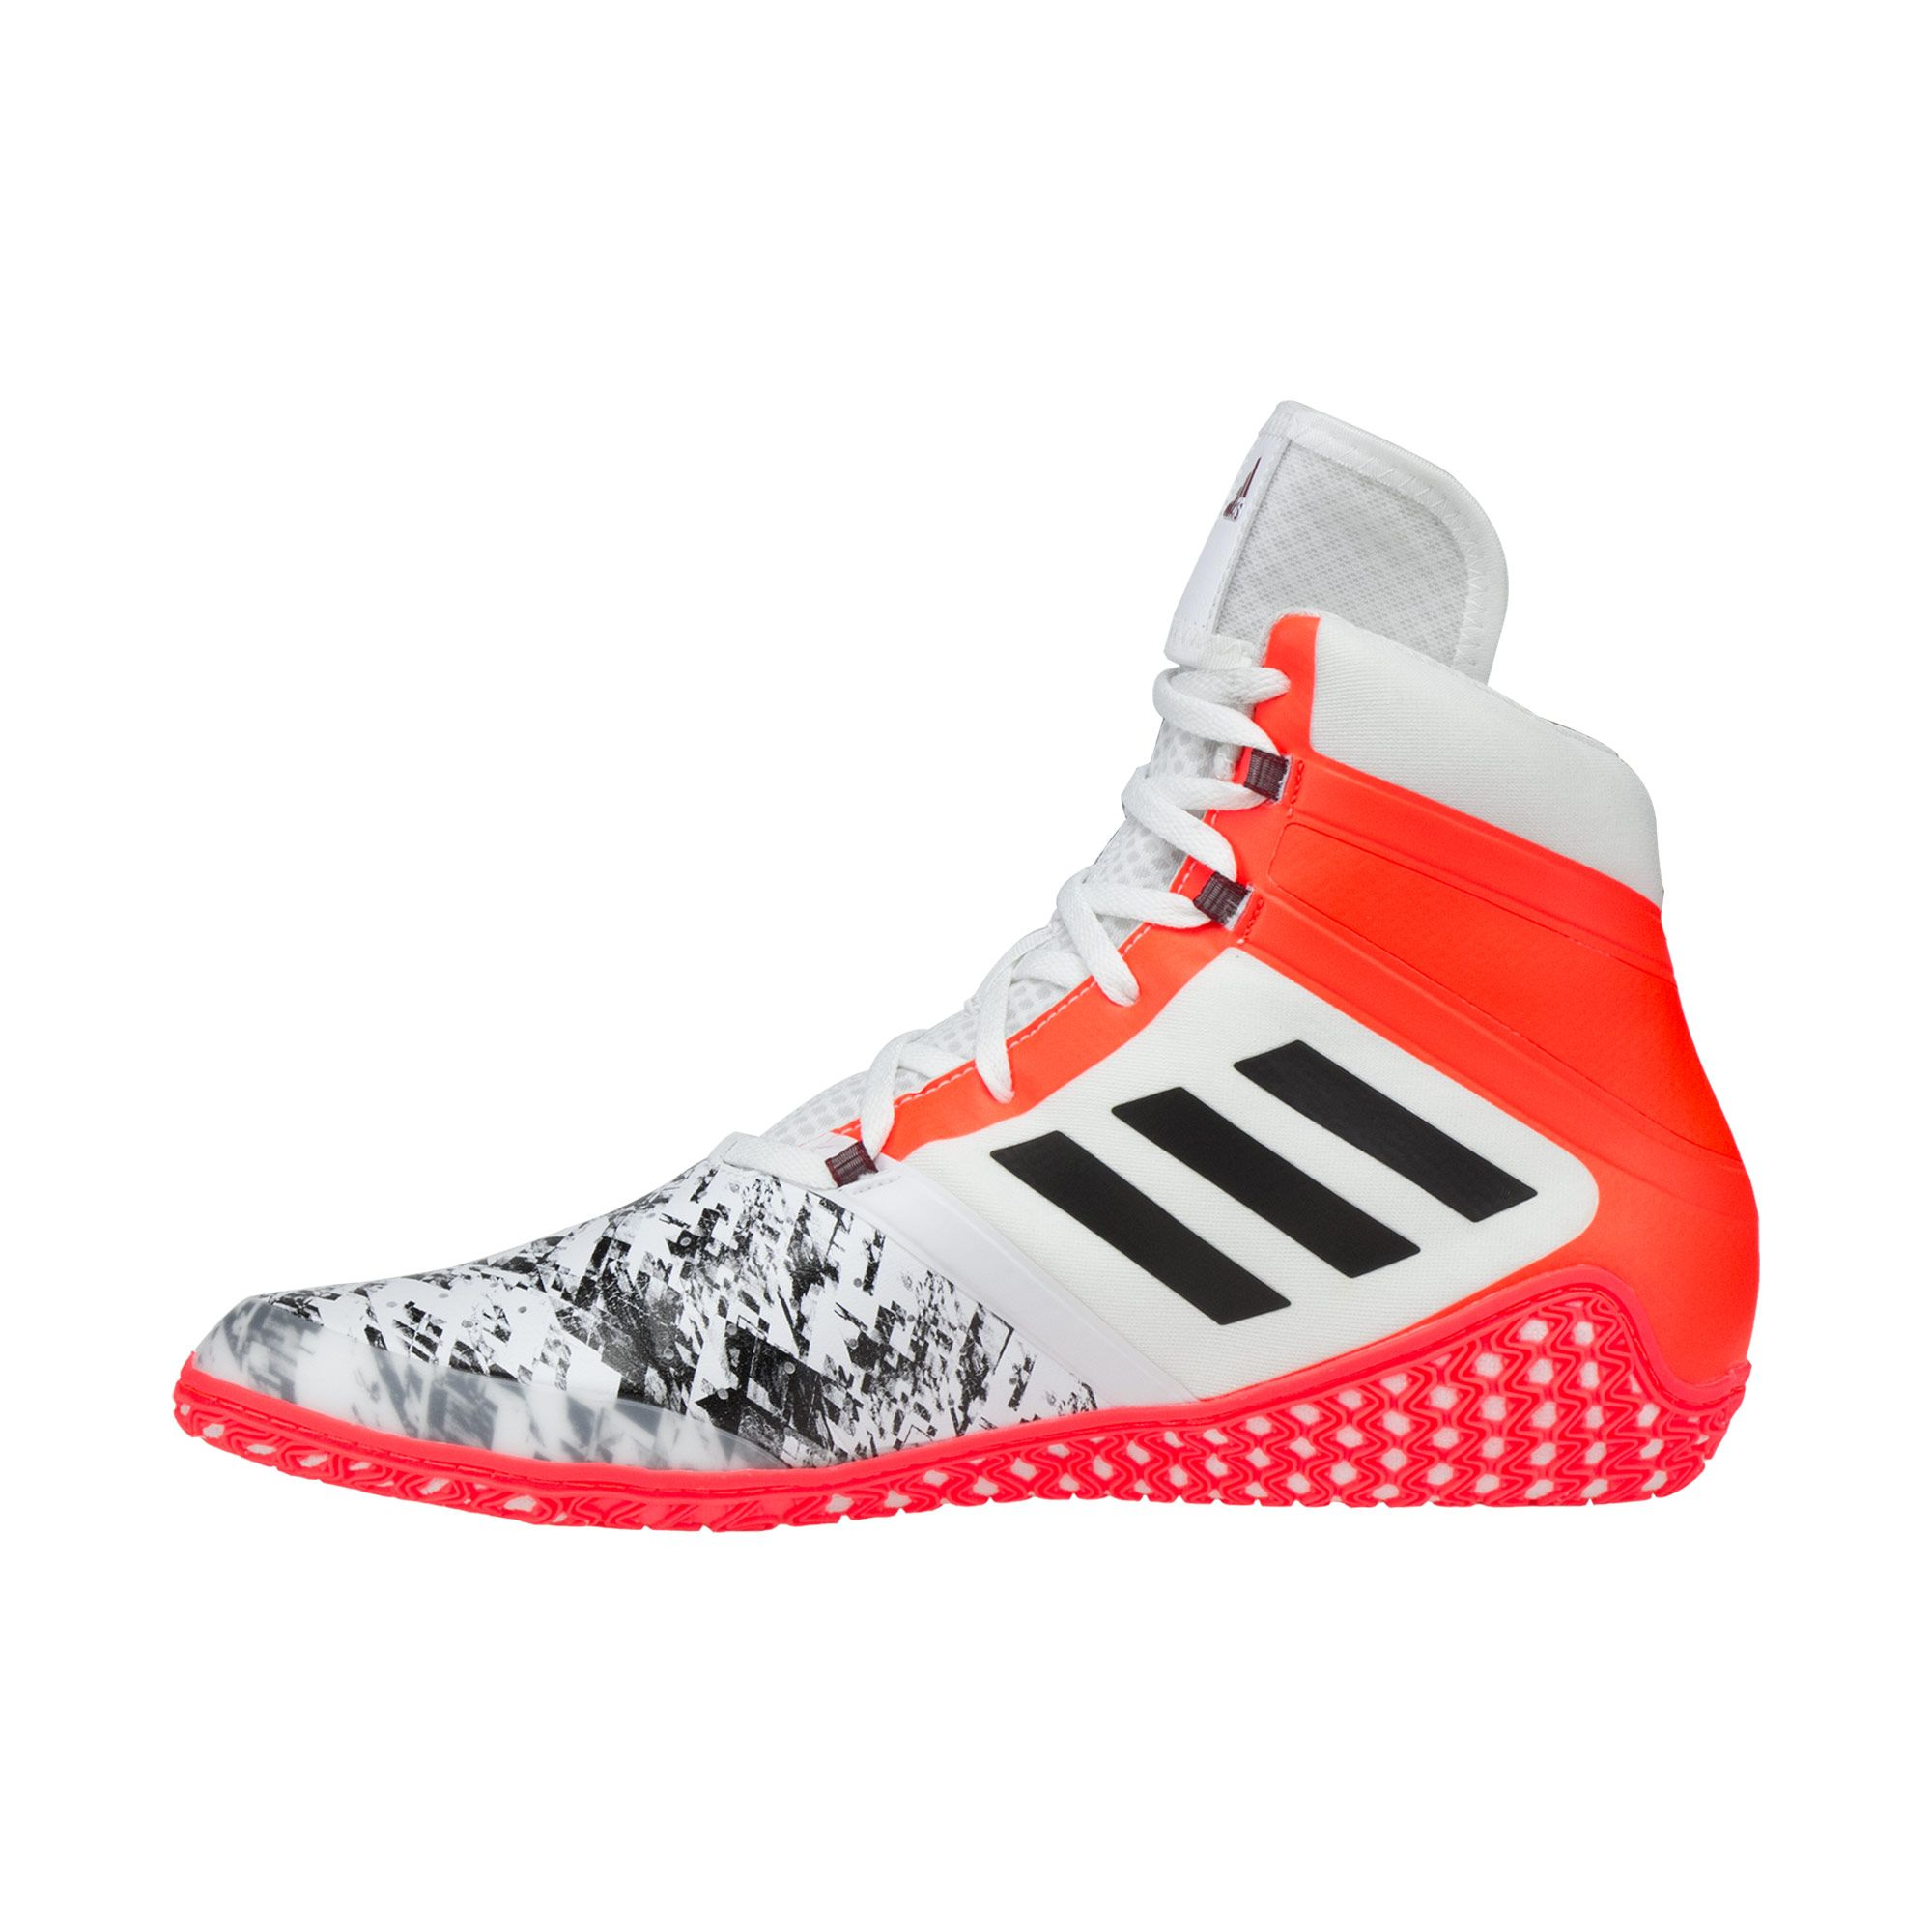 79918ca7128 ... Impact White Black Orange frontAdidas Impact White Black Orange backAdidas  Impact White Black Orange sole